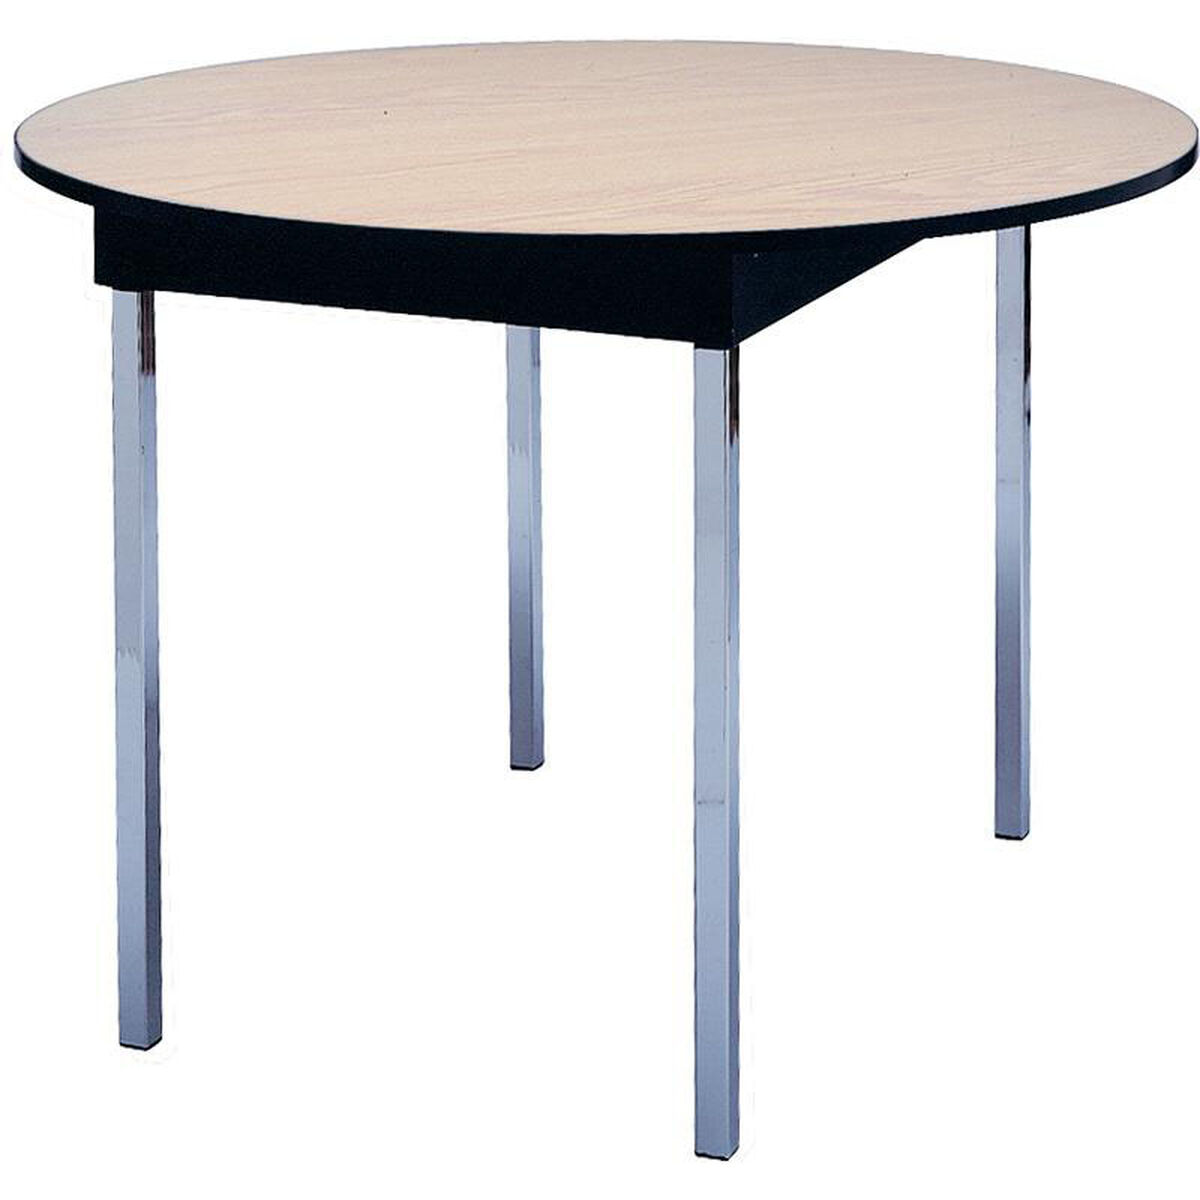 Round Conference Table DLDELRDVFE BestChiavariChairscom - 60 round conference table